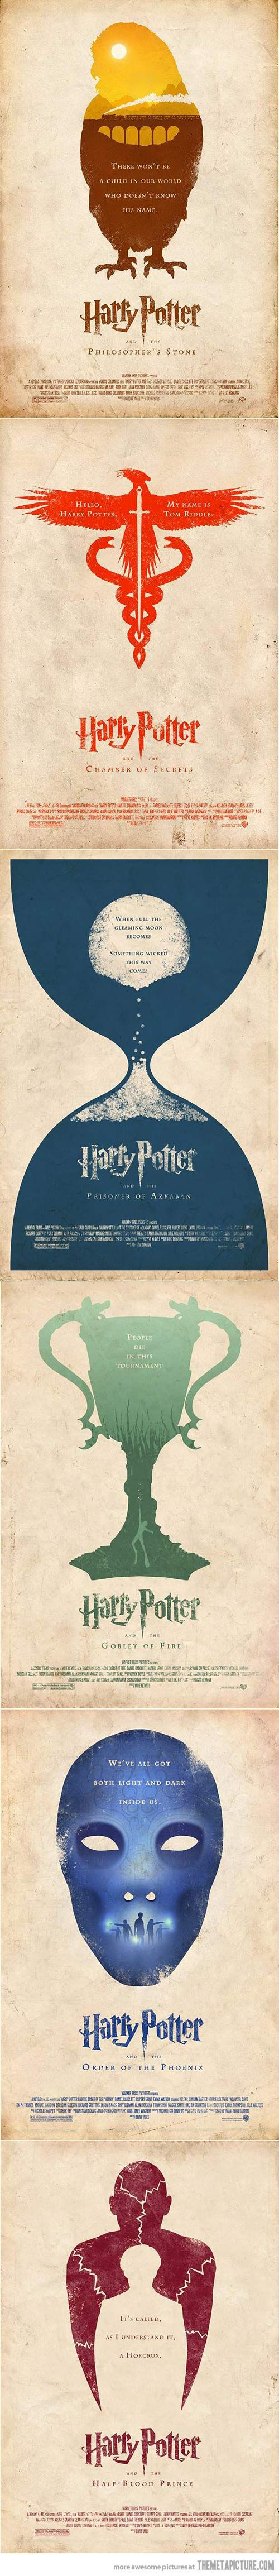 Alternative Poster Versions Of Harry Potter Movies by adamrabalais on Etsy